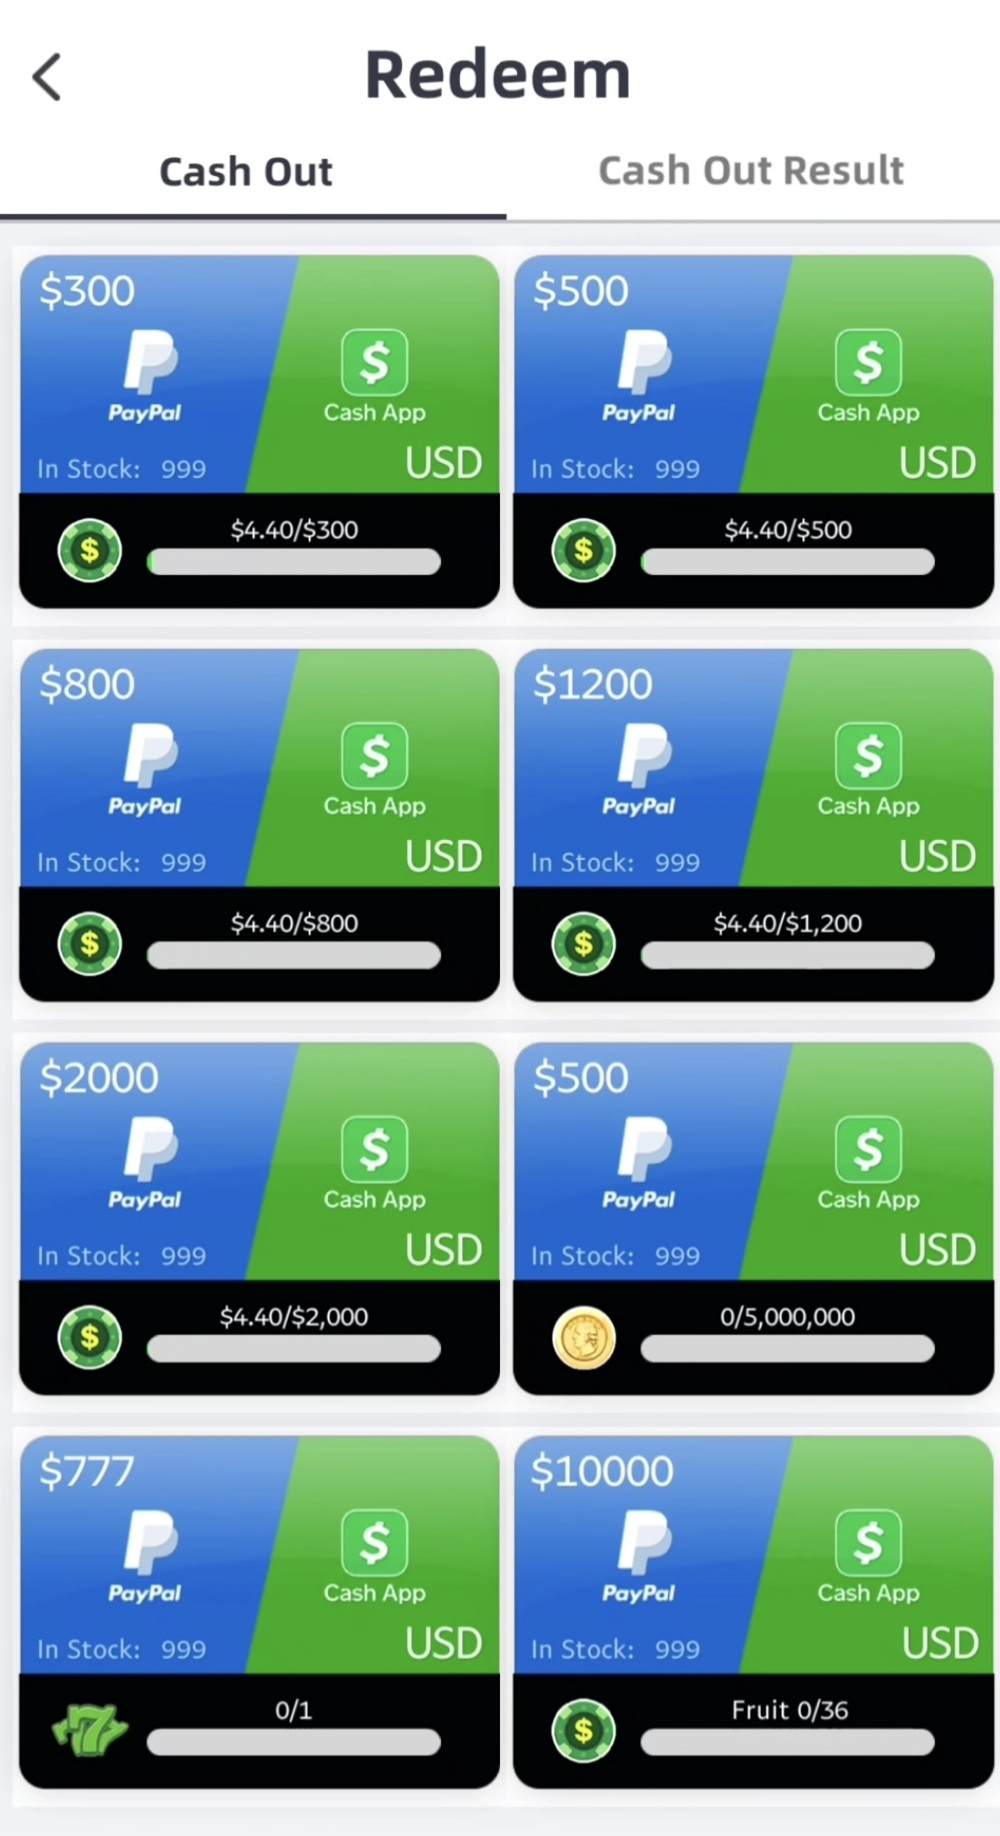 Two different cash payouts